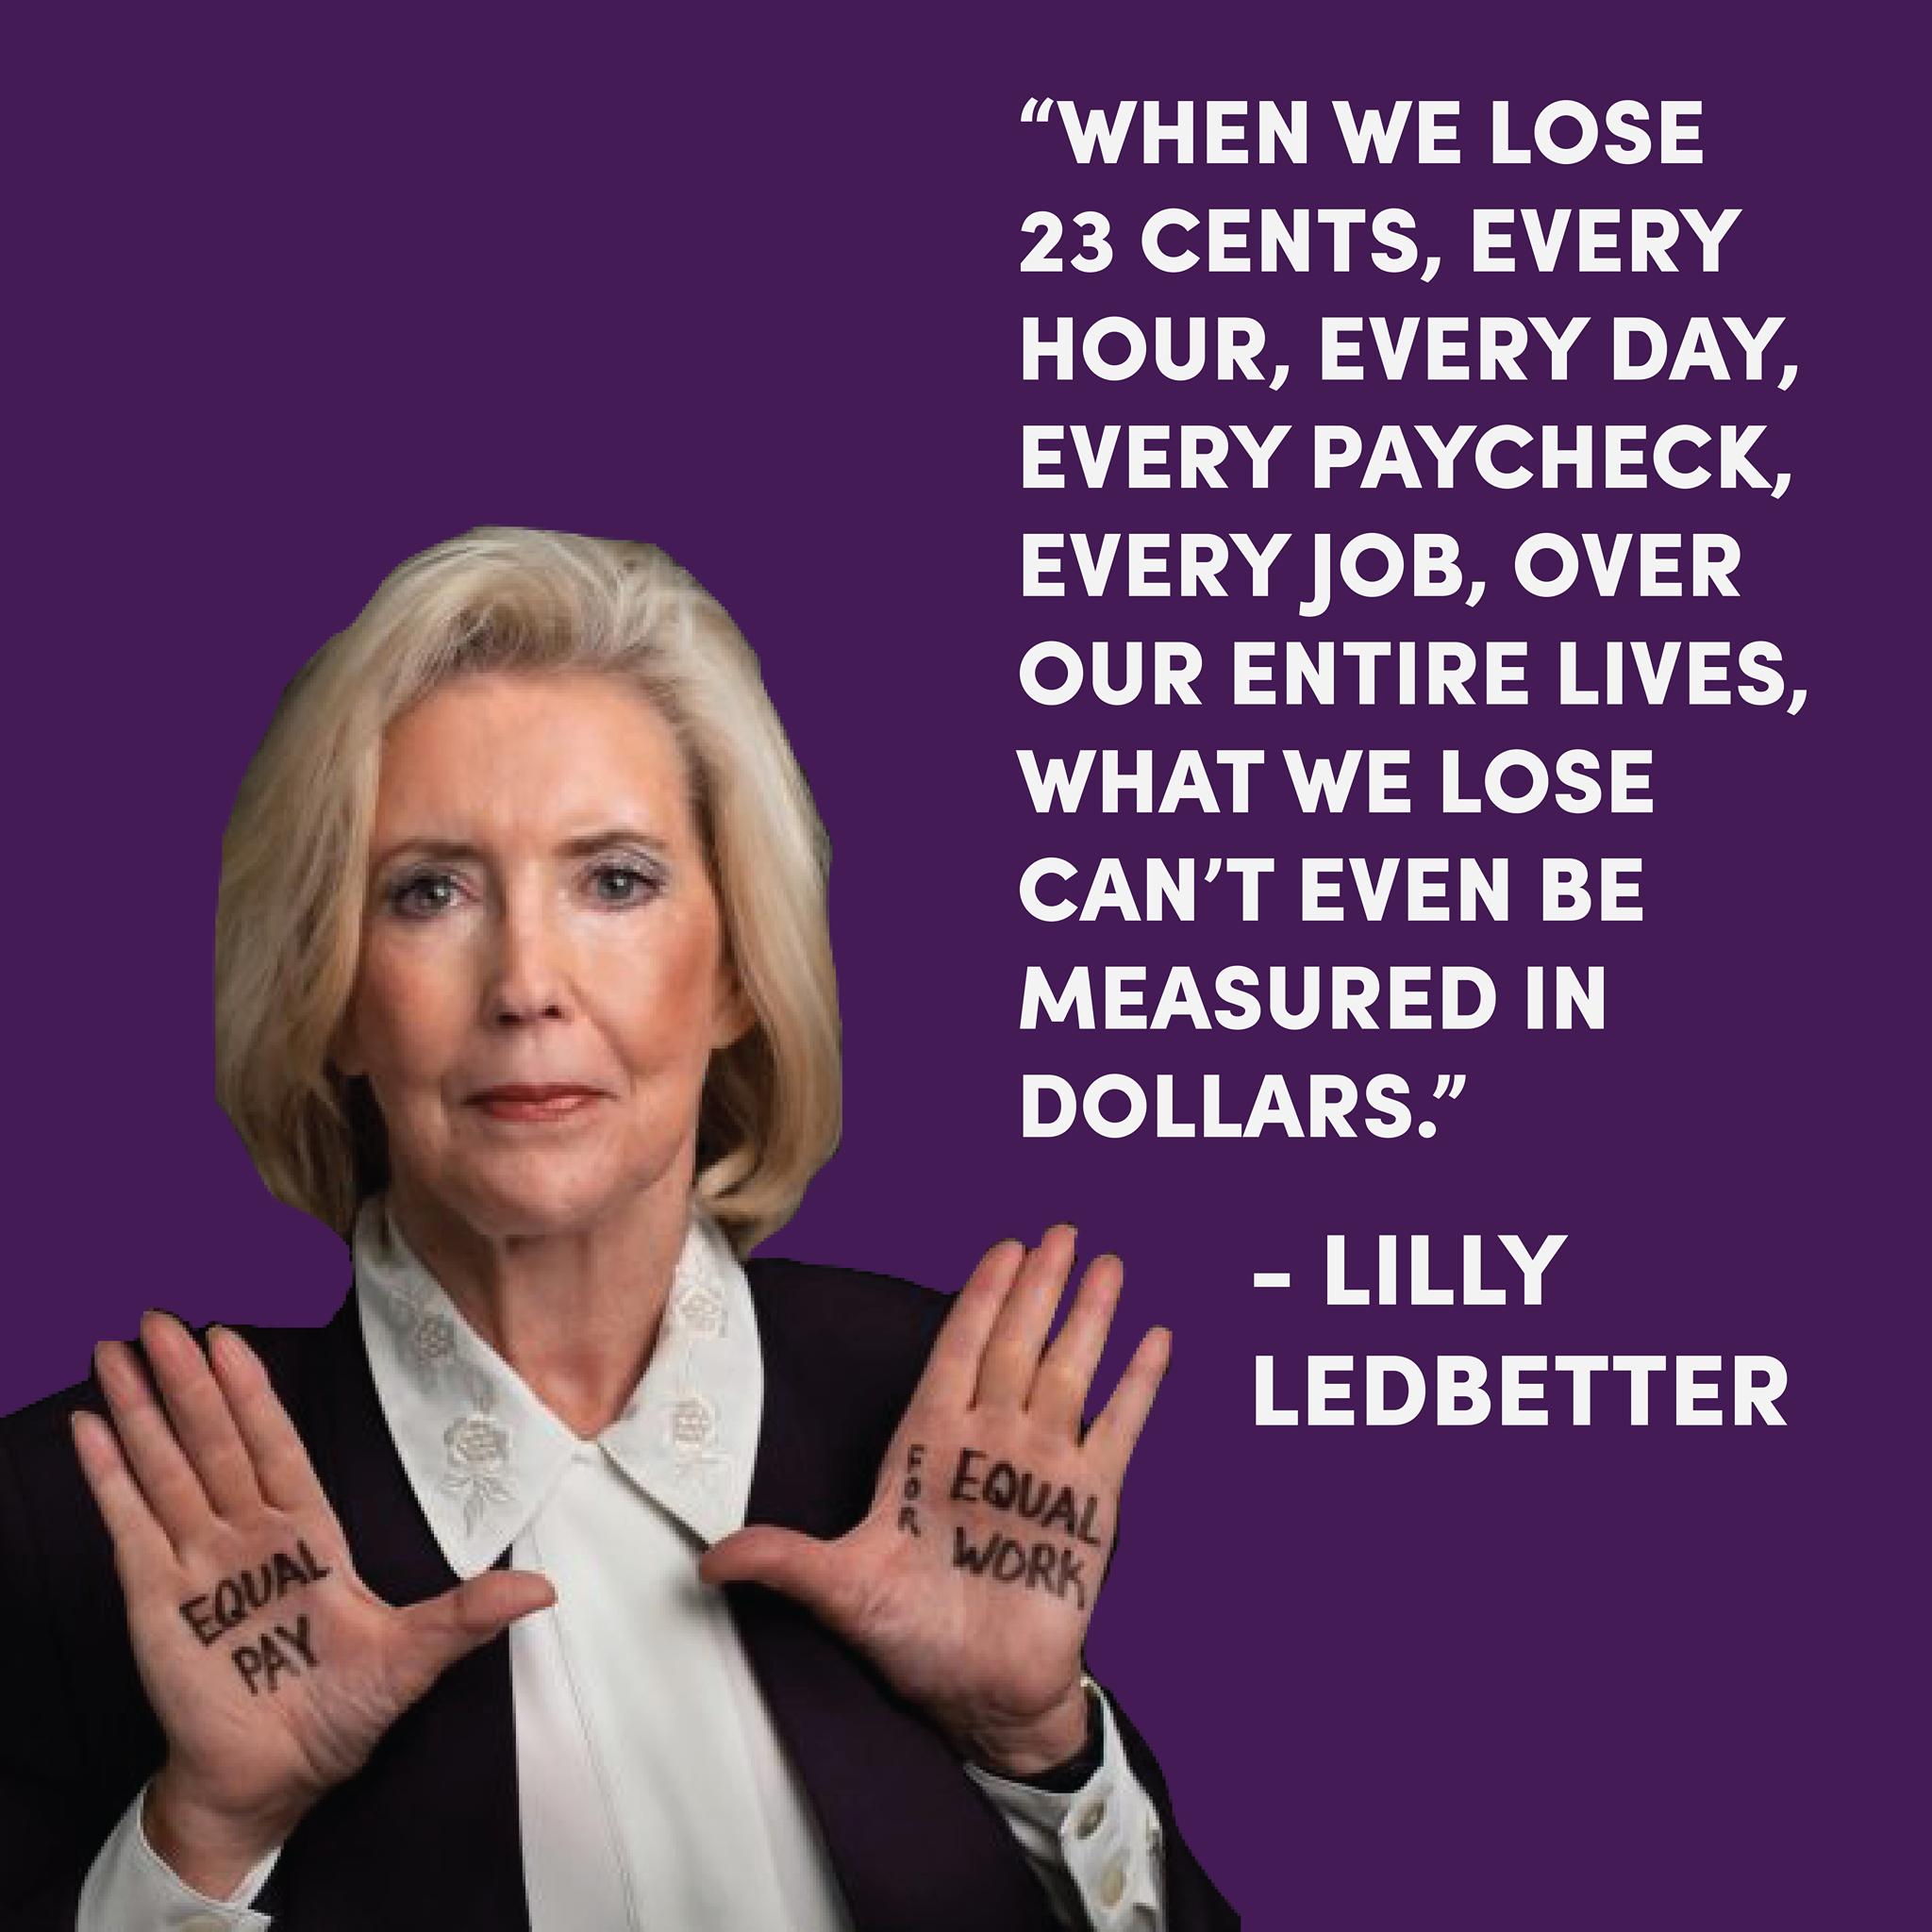 Lilly Ledbetter - Twenty years ago, Goodyear tire plant manager Lilly Ledbetter came to work one morning to find an anonymous note in her mailbox: it listed her salary, which was a fraction of what other male managers at Goodyear were making. Until this moment, Ledbetter was entirely unaware of her salary difference. Upon being hired, she had signed an agreement that prohibited her from discussing pay with her coworkers, effectively silencing her employer's discriminatory pay practices. As a silence-breaker of her time, Ledbetter courageously brought her case to the Supreme Court. She became the champion of what would become a national movement for equal pay. Ledbetter's story transcends the fight for equal pay: in the wake of the #MeToo movement, we are reminded that cultures of silence – ones that are both legally and culturally reinforced -- have the ability to stall, stunt and end careers. More importantly, it is a prologue to what must become a higher standard for transparency, accountability and equality in workplaces across the country.